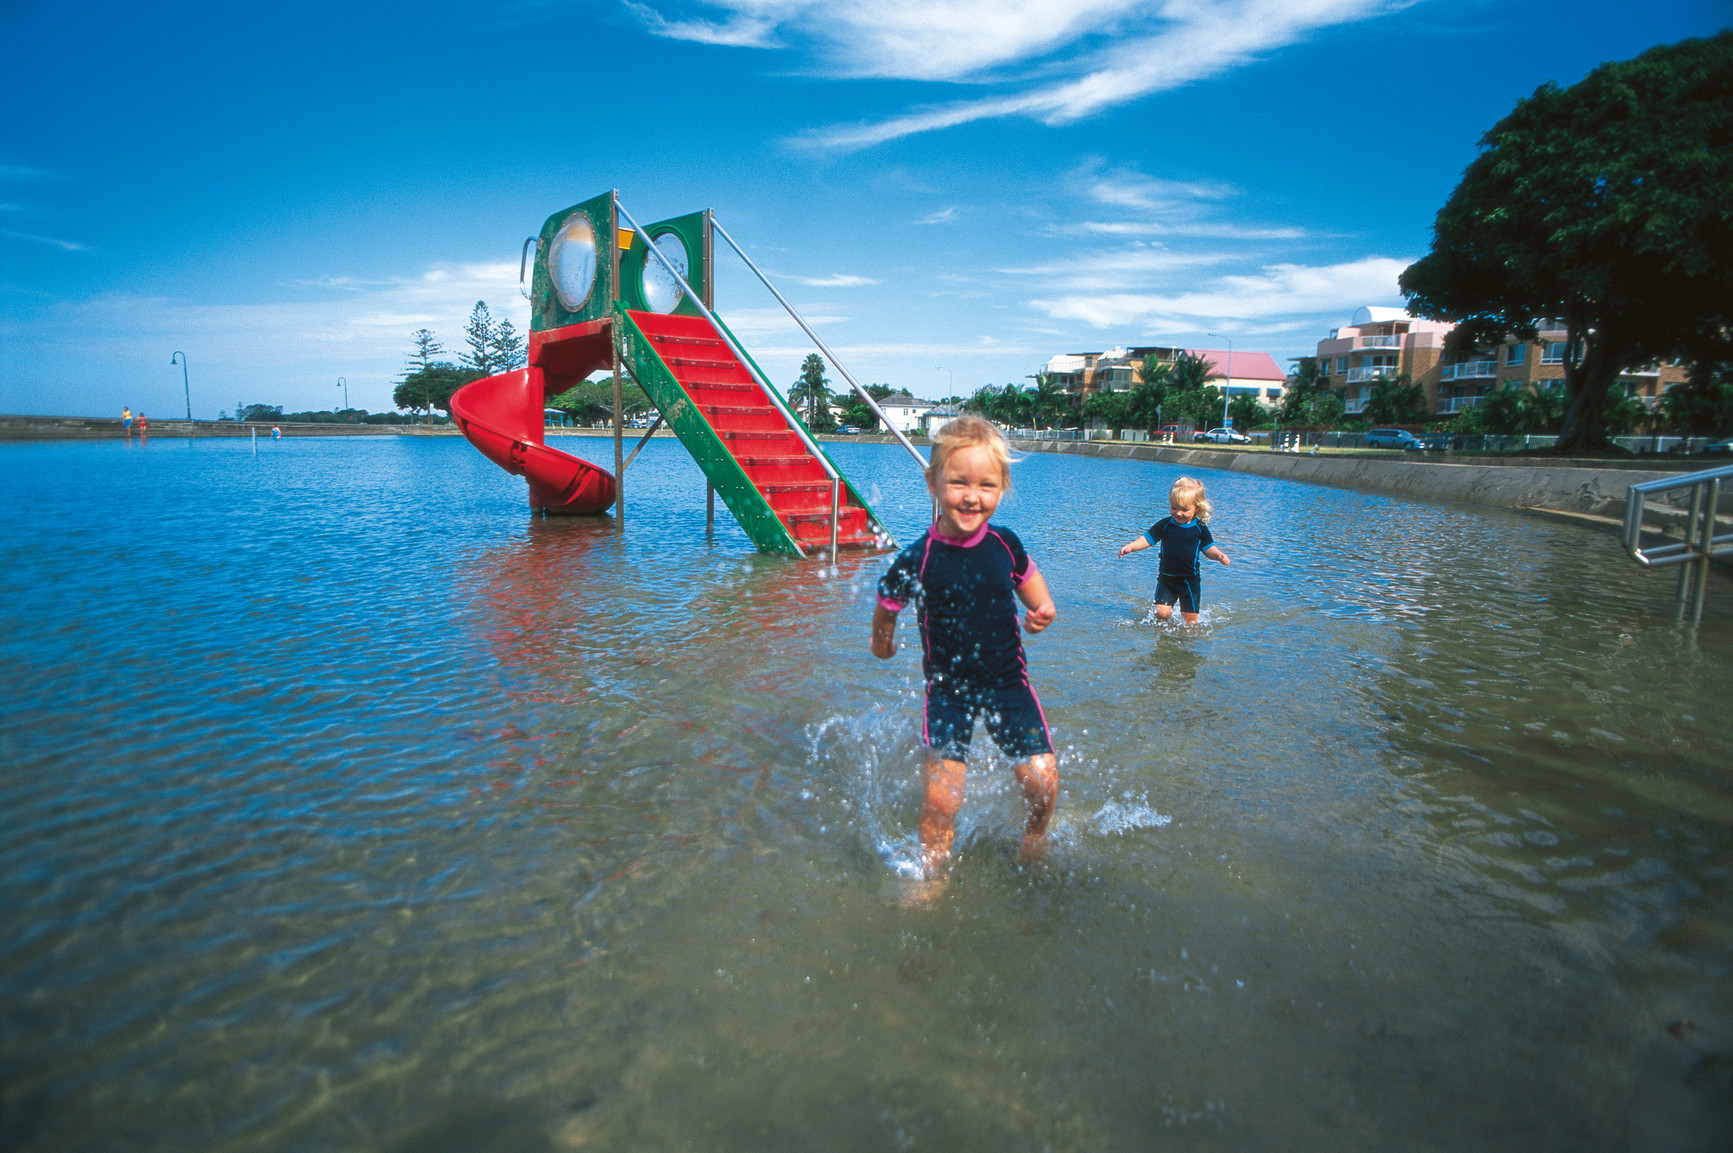 Wynnum wading pool in Brisbane